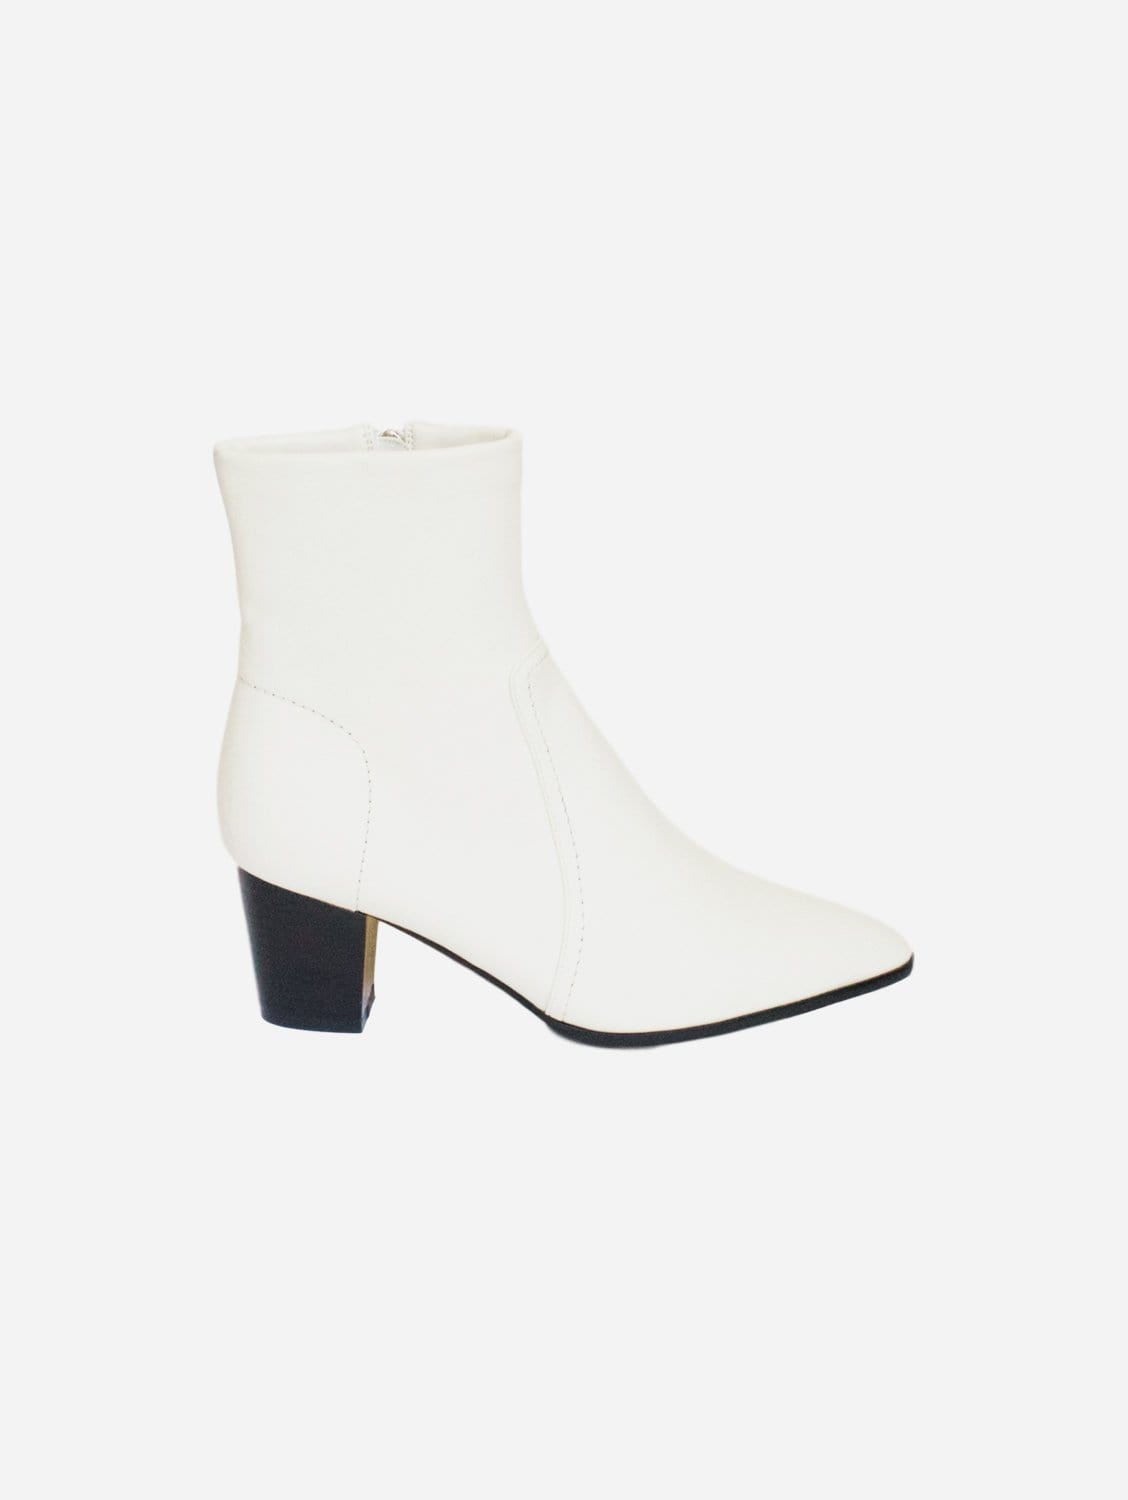 Kali Cowboy Style Up-Cycled Vegan Leather Boot | Off-White